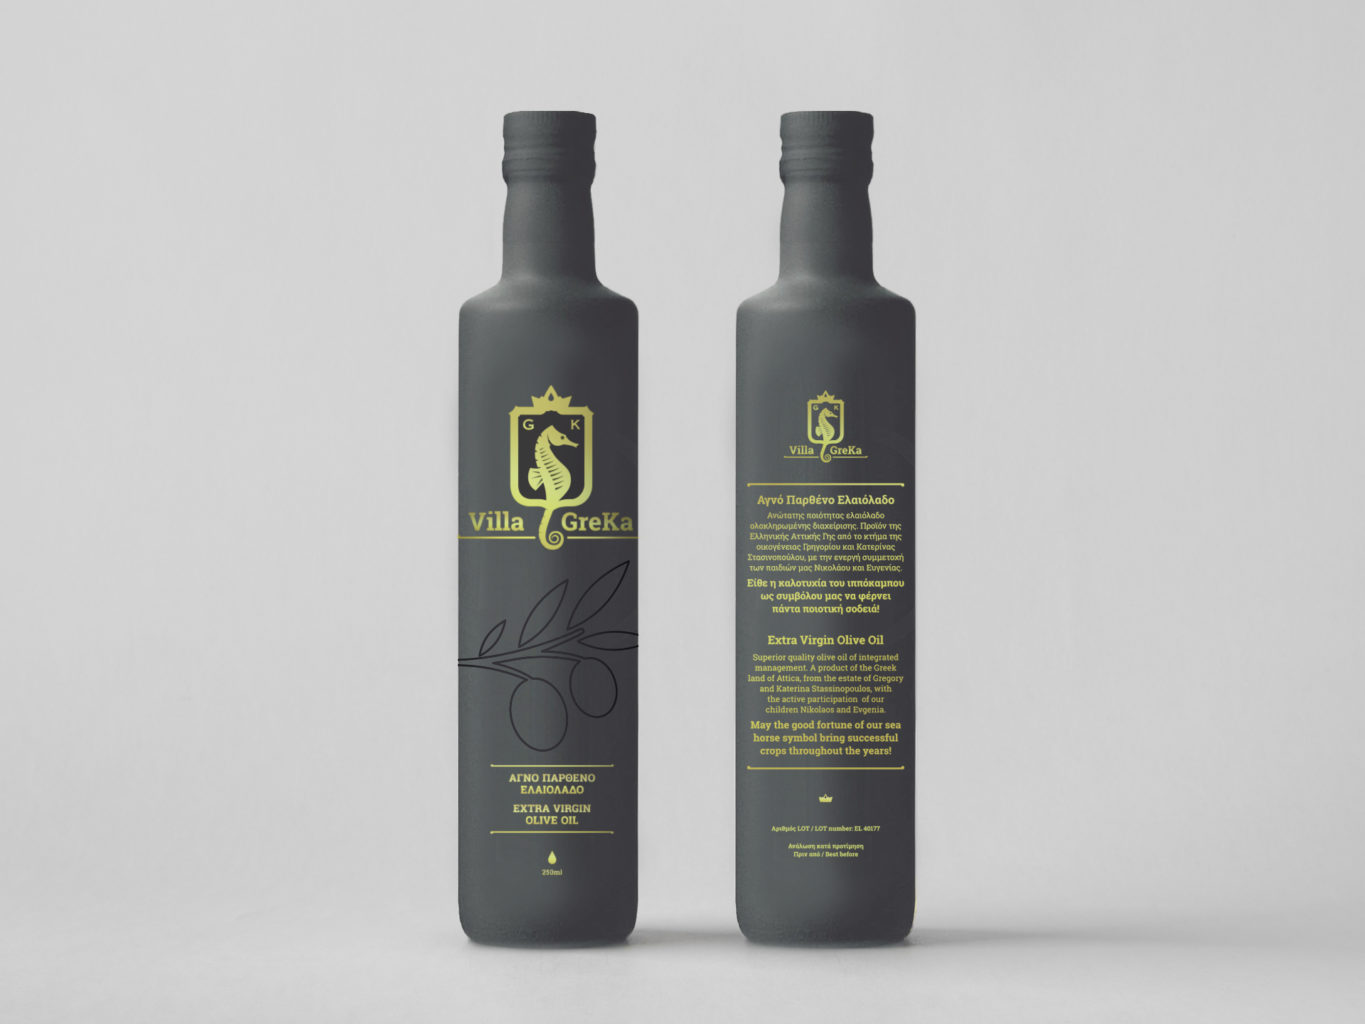 villa greka packaging